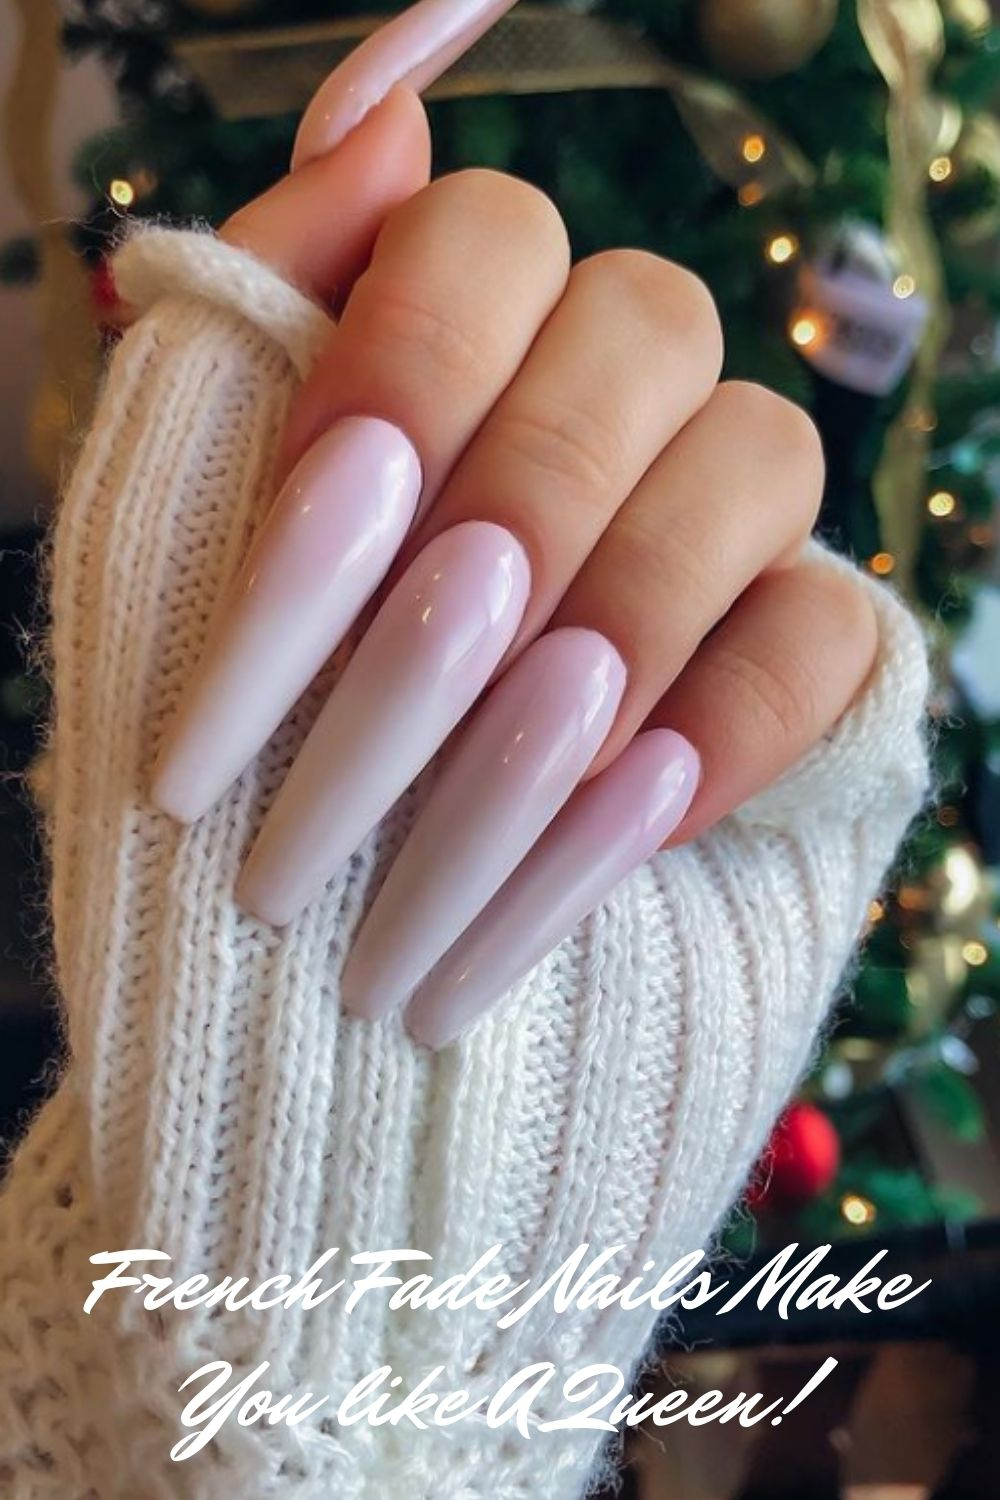 43 Best Trendy French Fade Nails Make You Like A Queen!